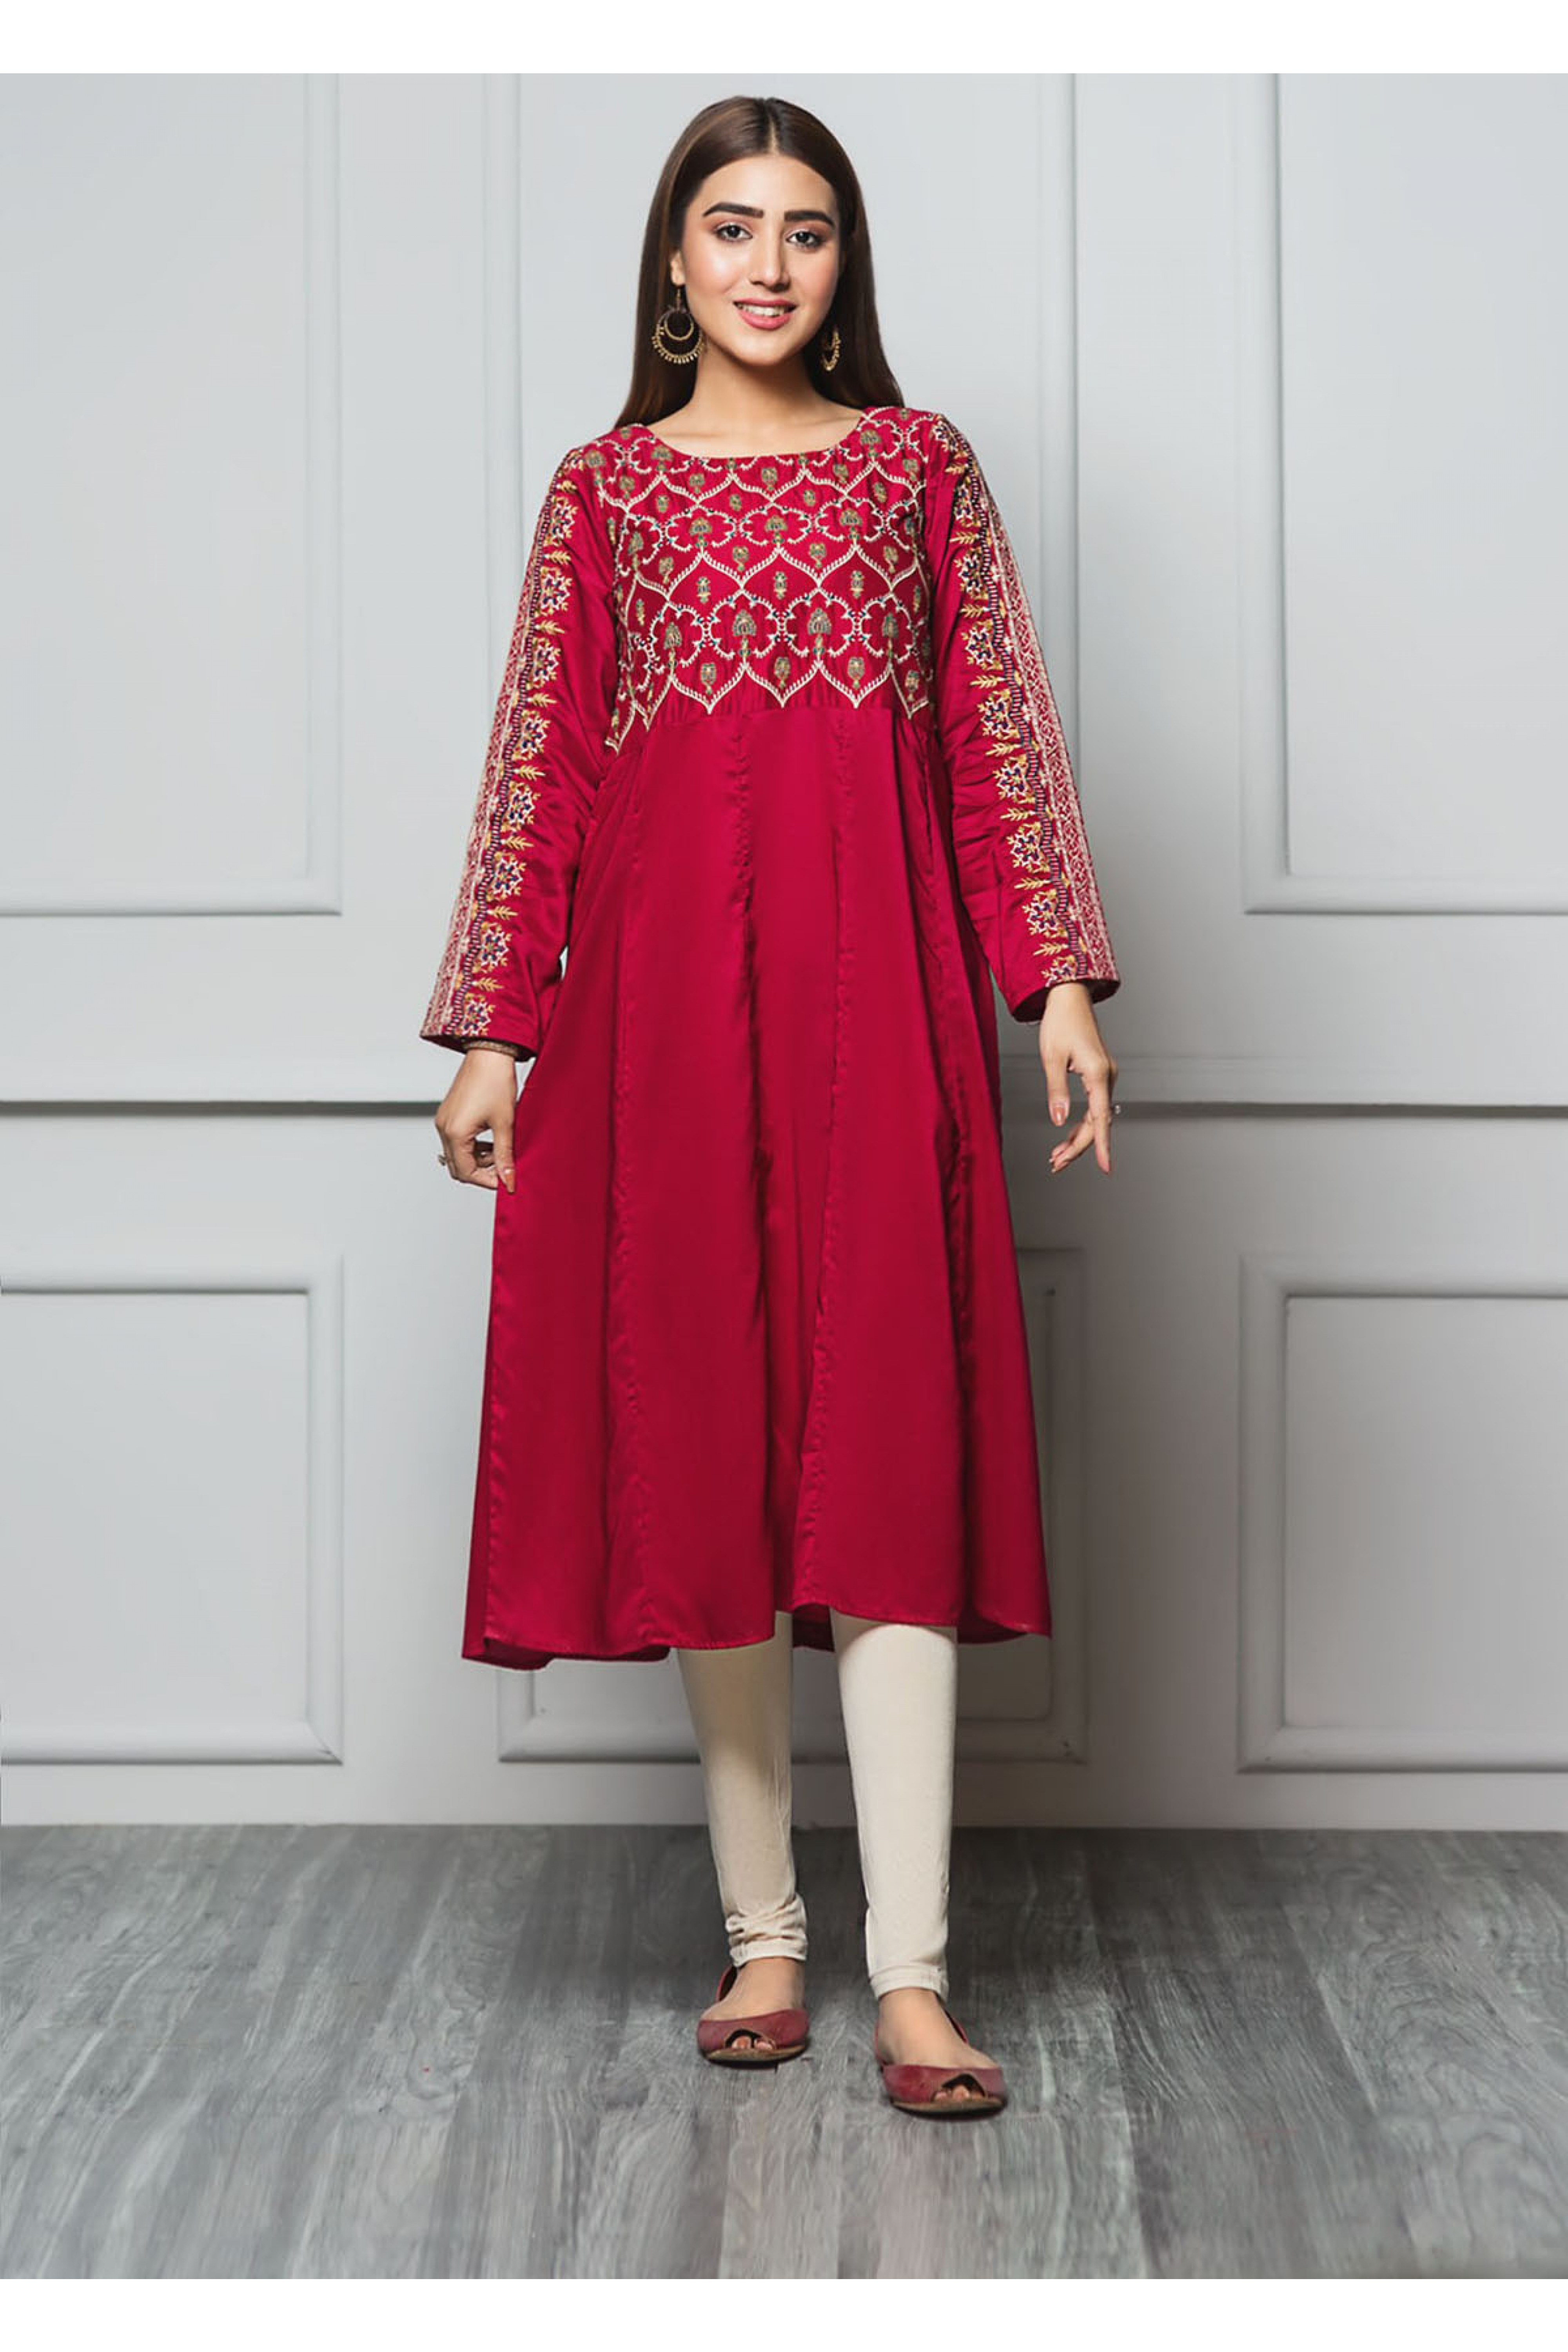 CRIMSON(Embroidered Frock)